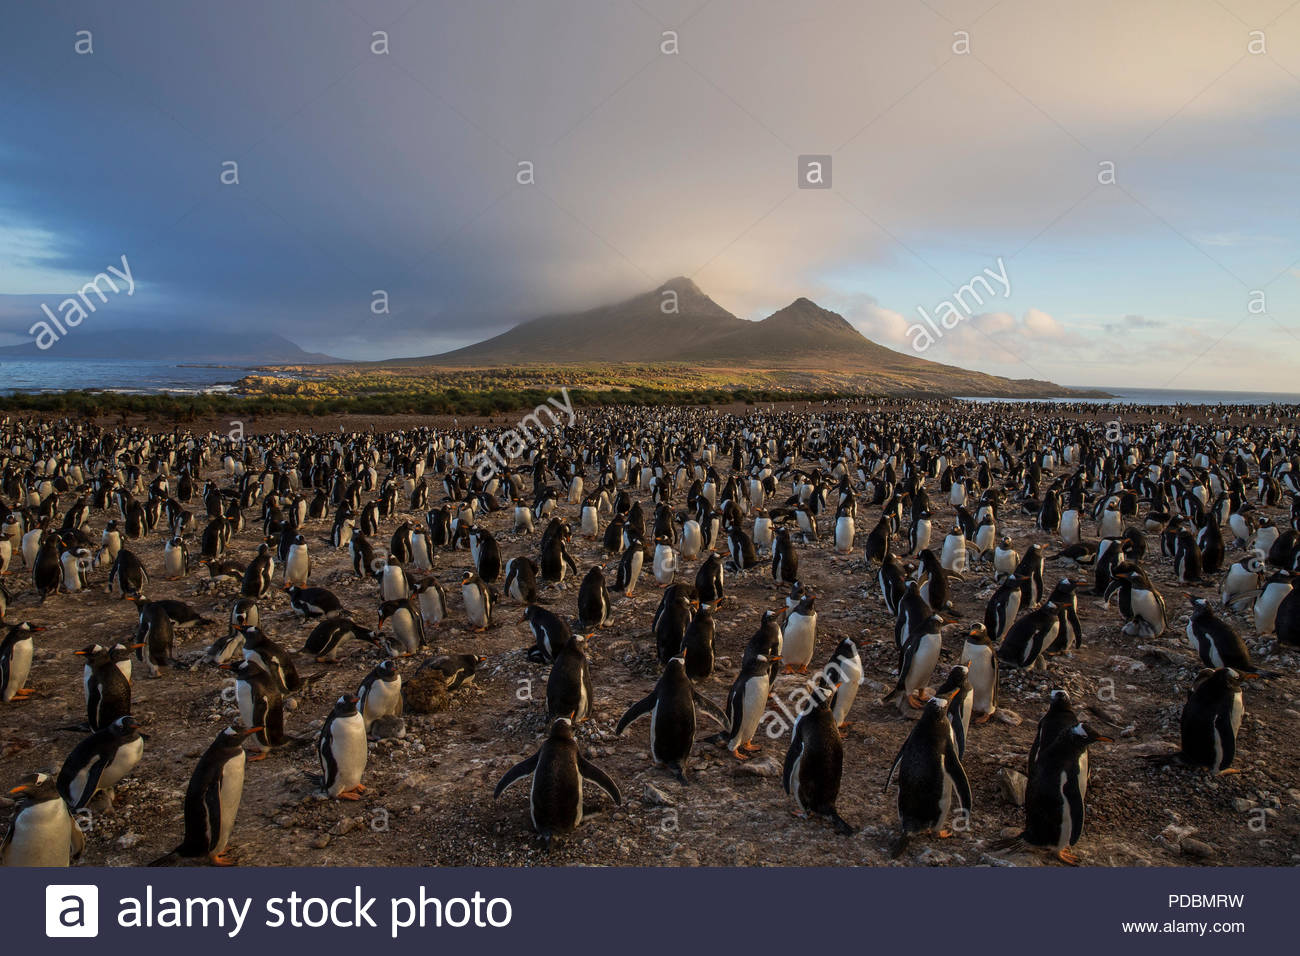 A gentoo penguin colony on Steeple Jason Island. - Stock Image